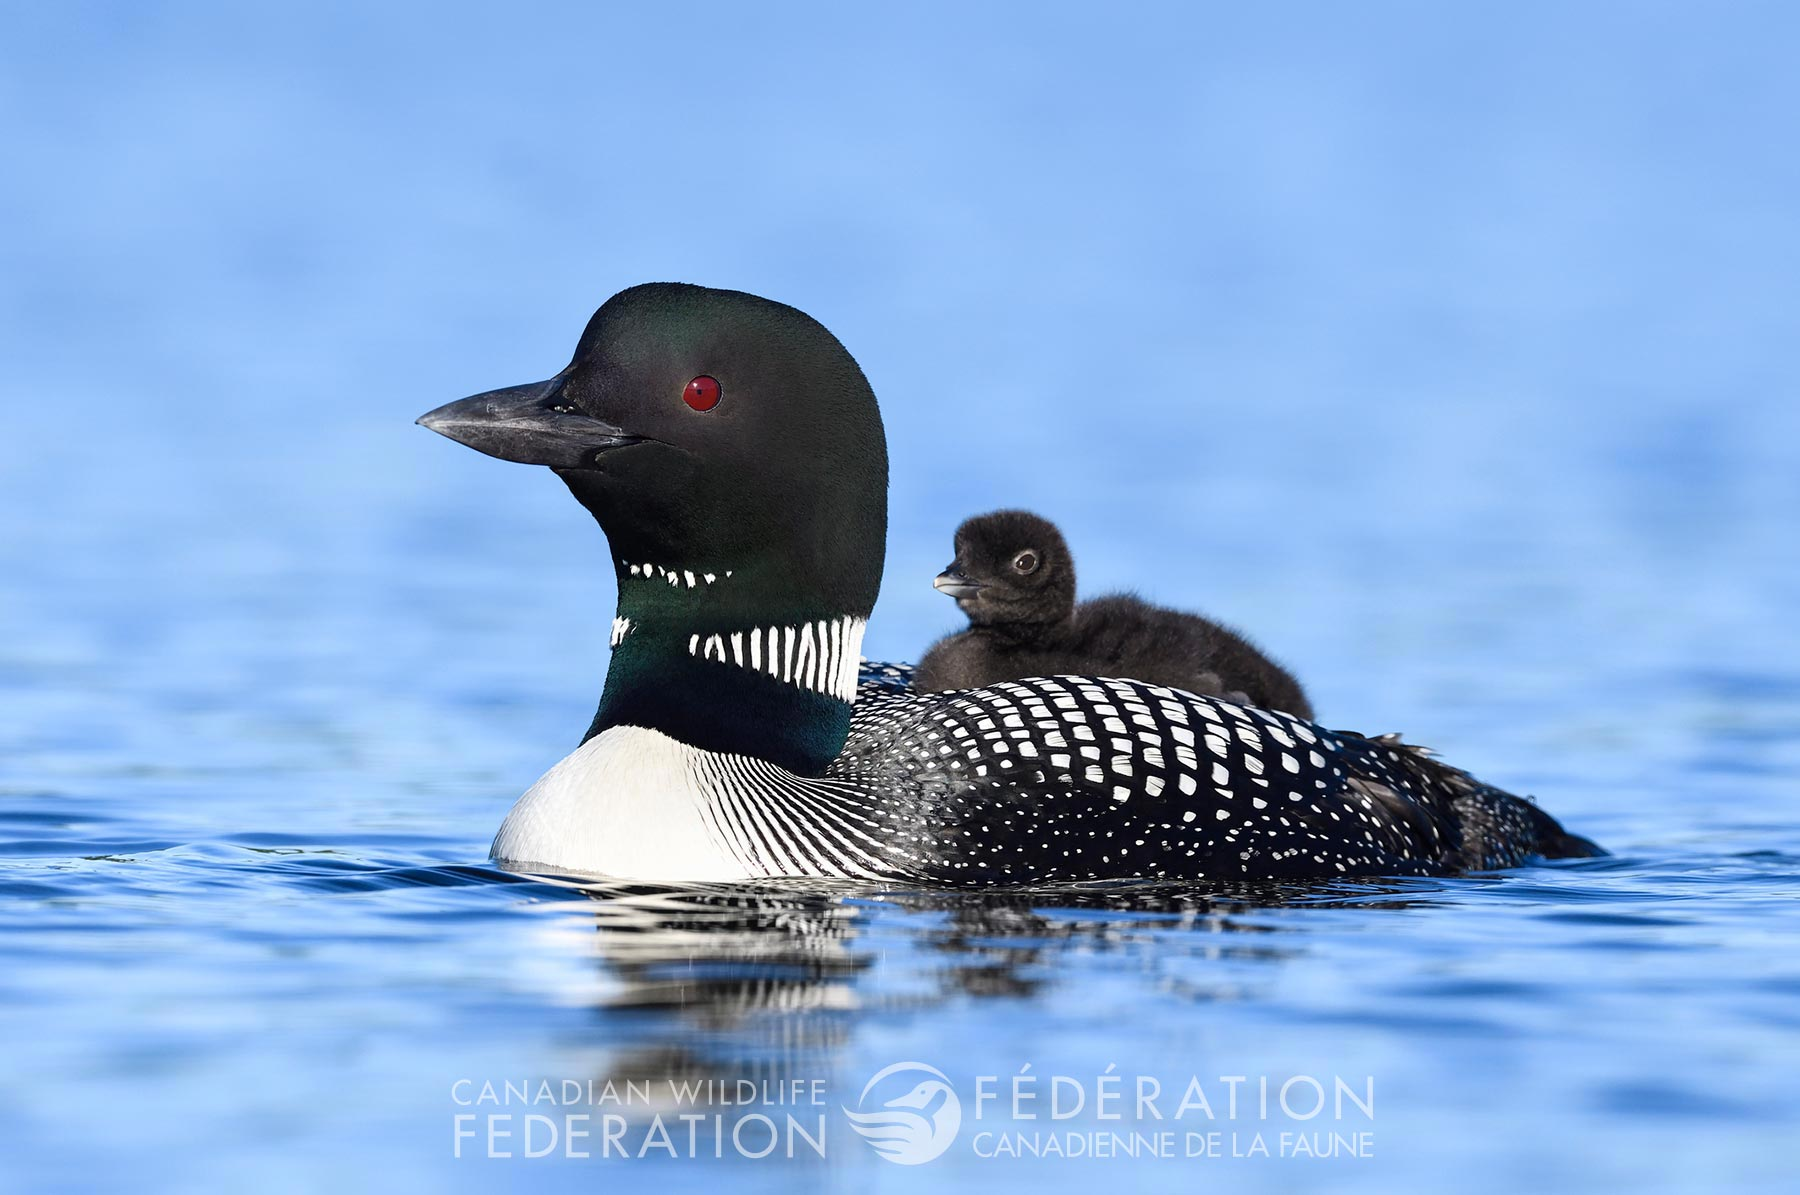 loon-parent-chick-water-bird.jpg